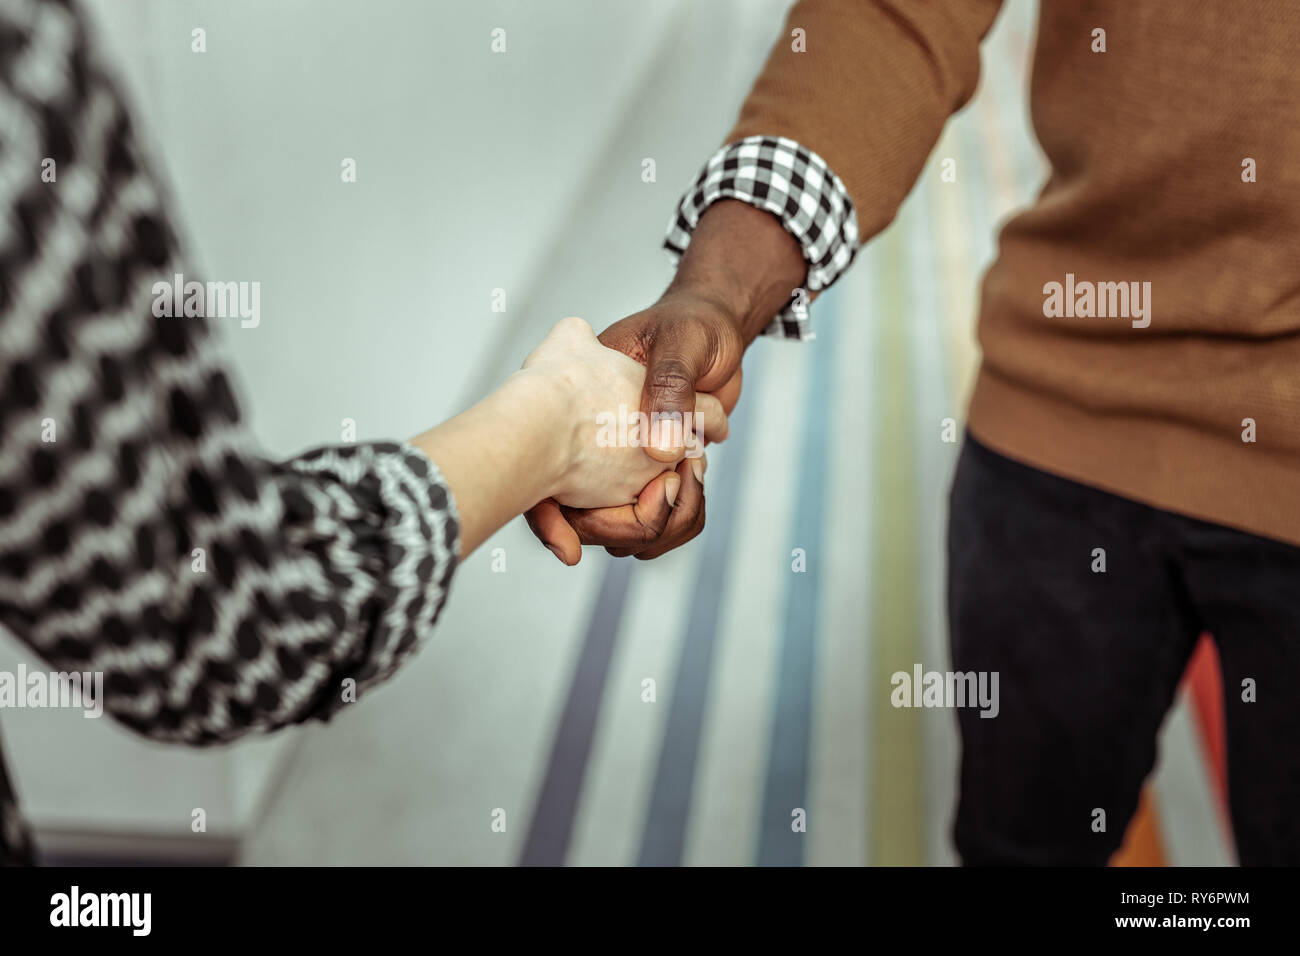 Dark-skinned strong man shaking hands with tiny pale woman - Stock Image